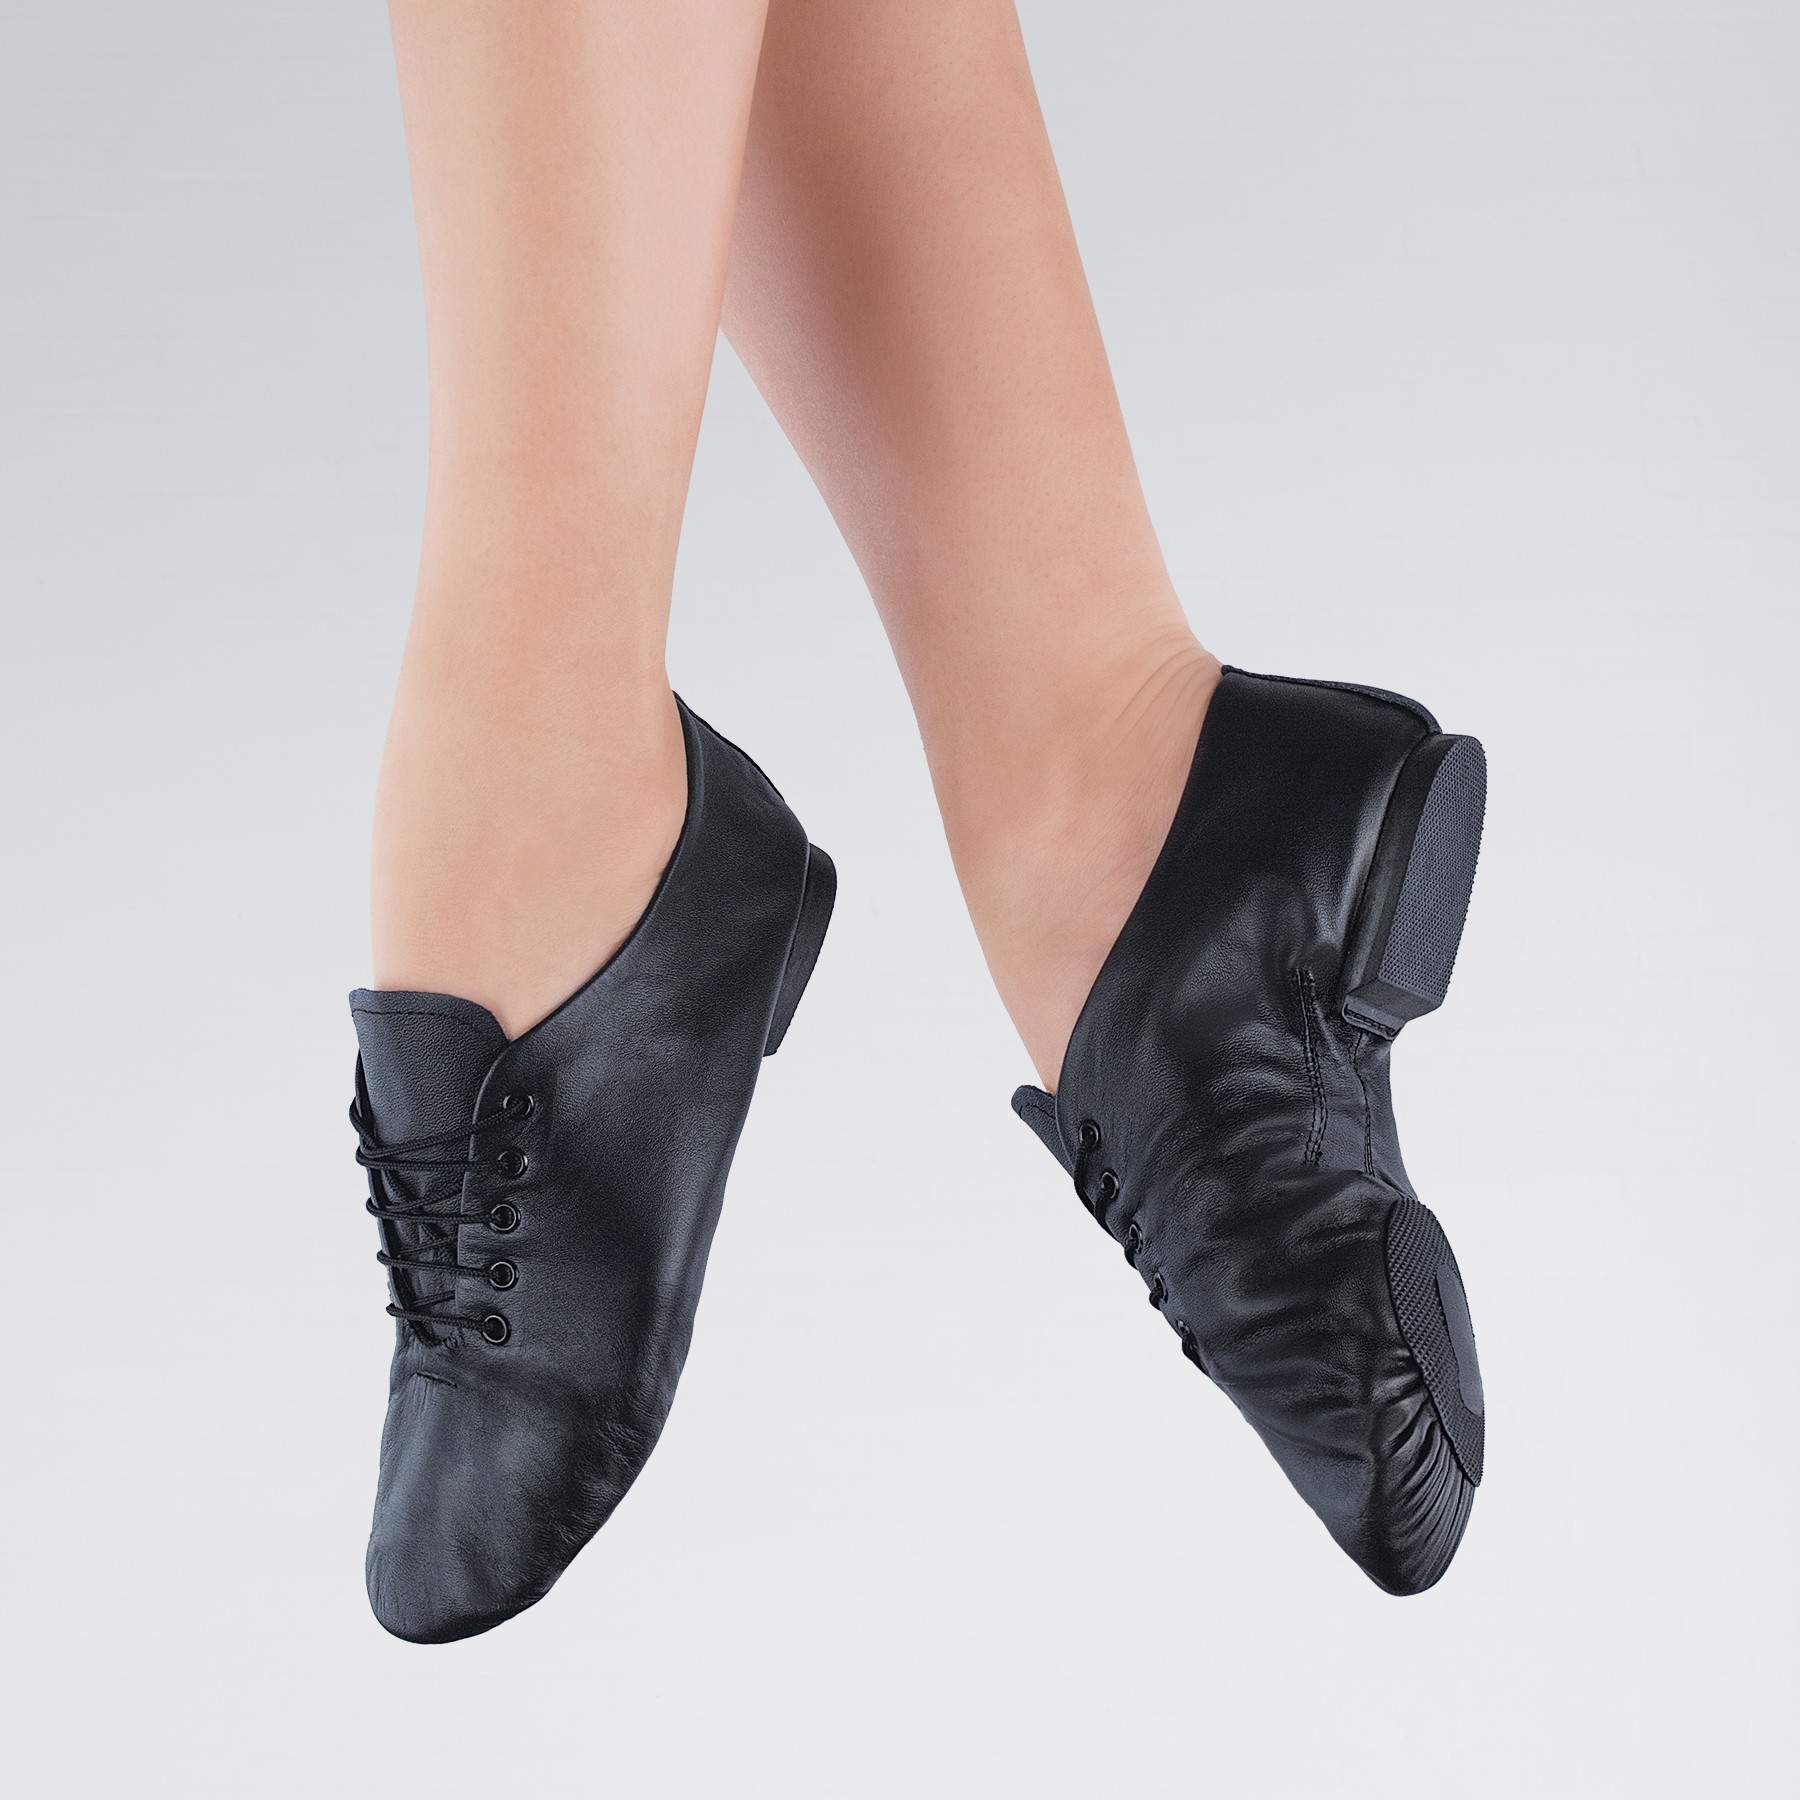 1st Position Split Sole Jazz Shoes (Black)